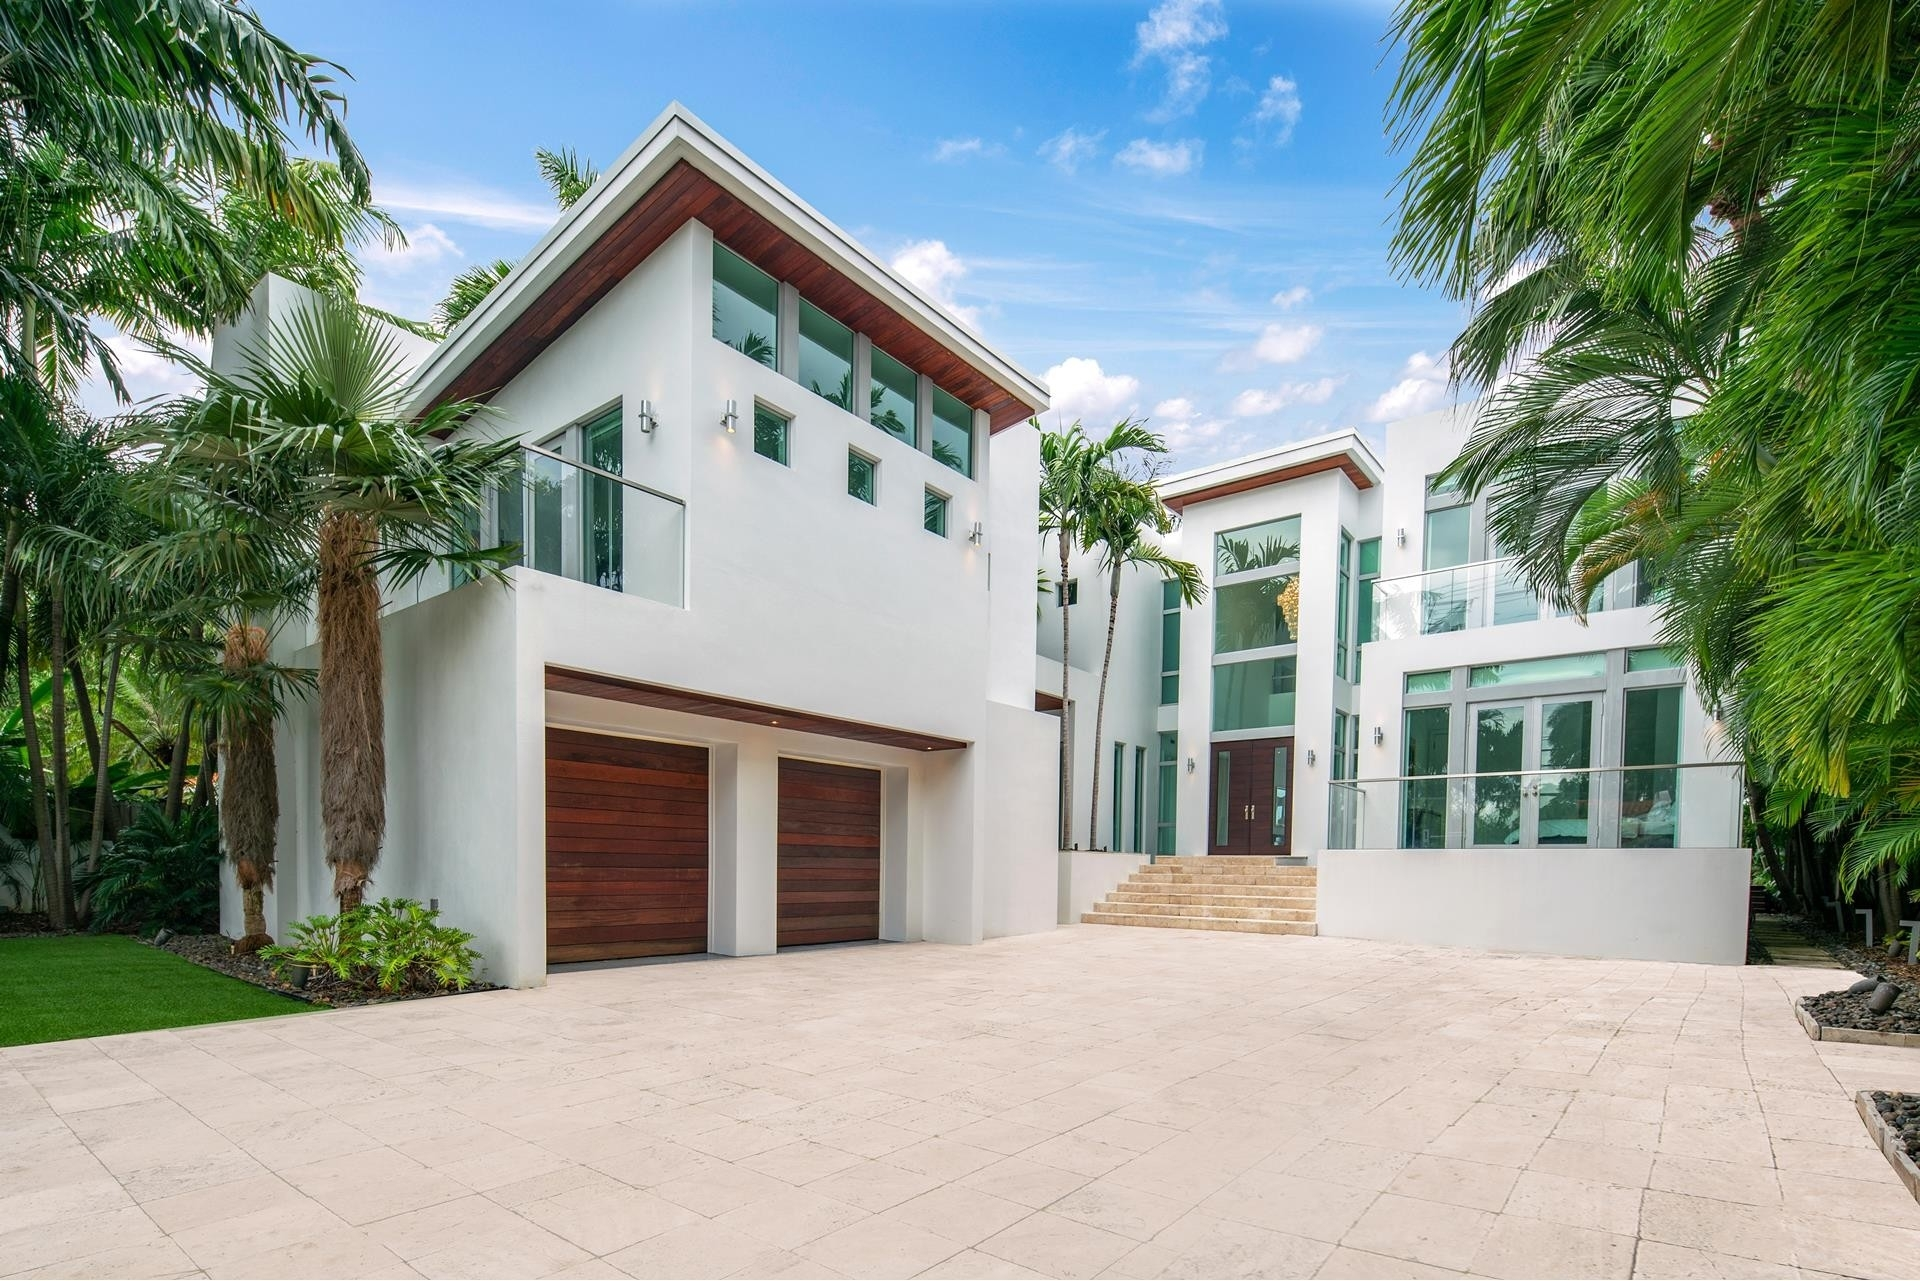 Single Family Home for Sale at Venetian Islands, Miami, FL 33139